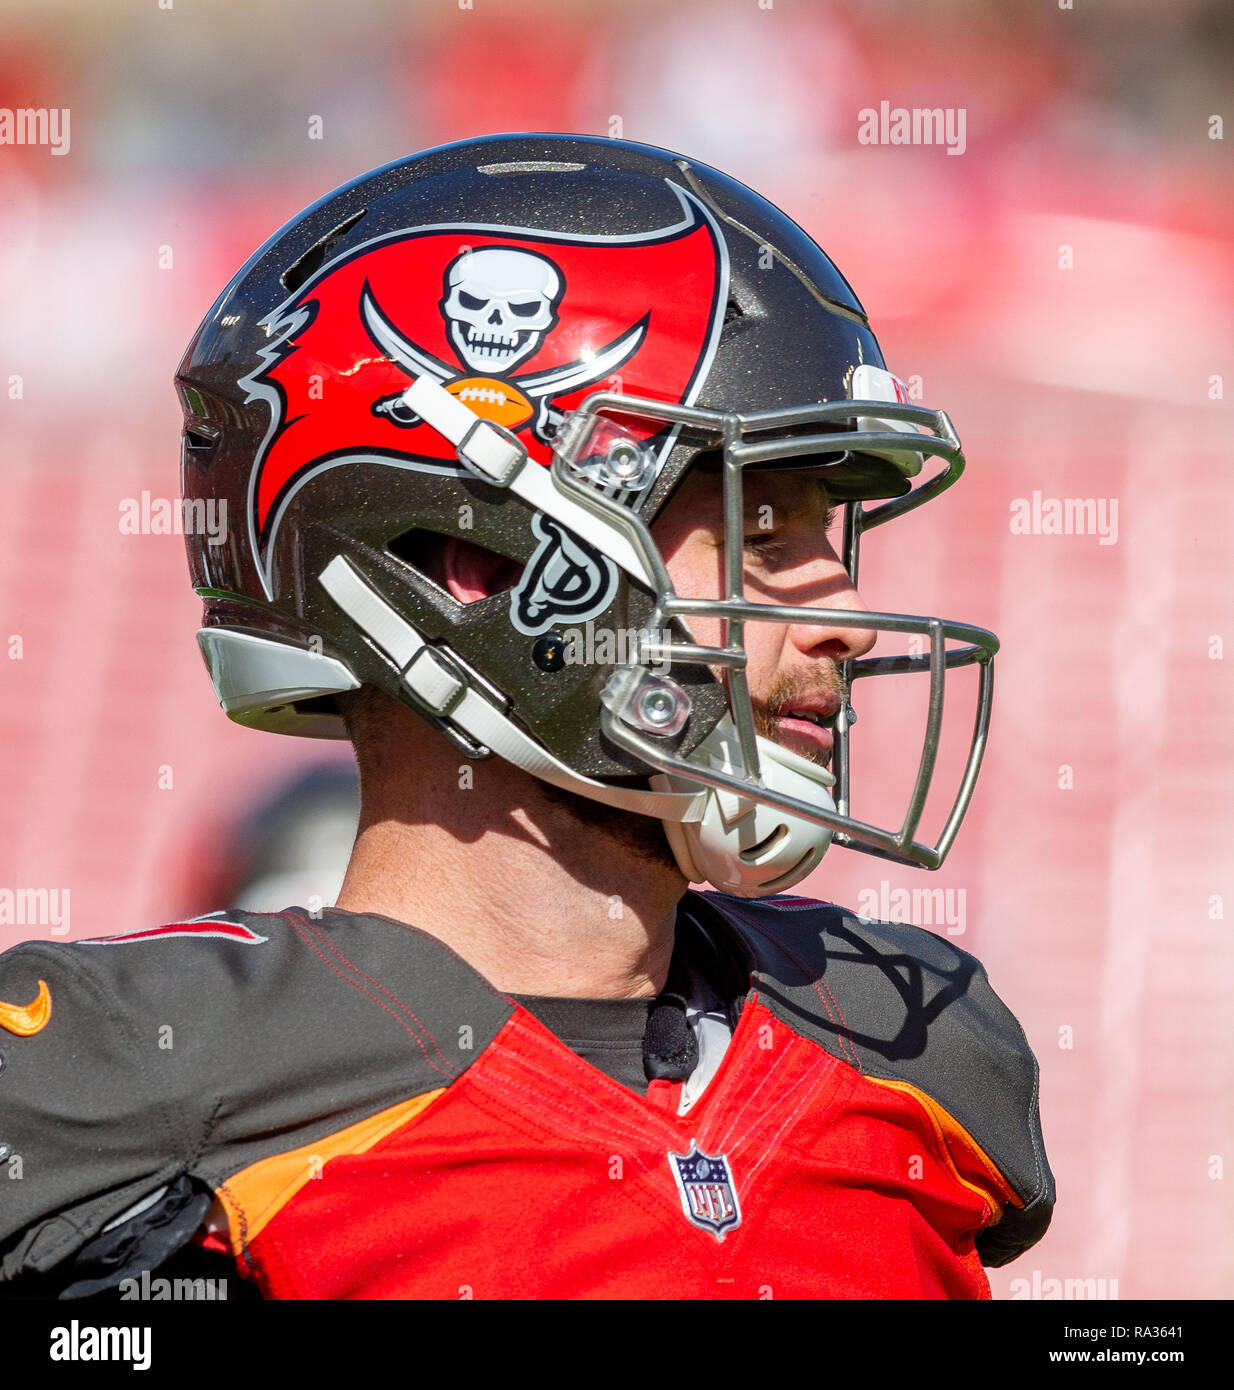 ba1608033 Tampa, Florida, USA. 30th Dec, 2018. Tampa Bay Buccaneers quarterback Ryan  Griffin (4) before the game between the Atlanta Falcons and the Tampa Bay  ...